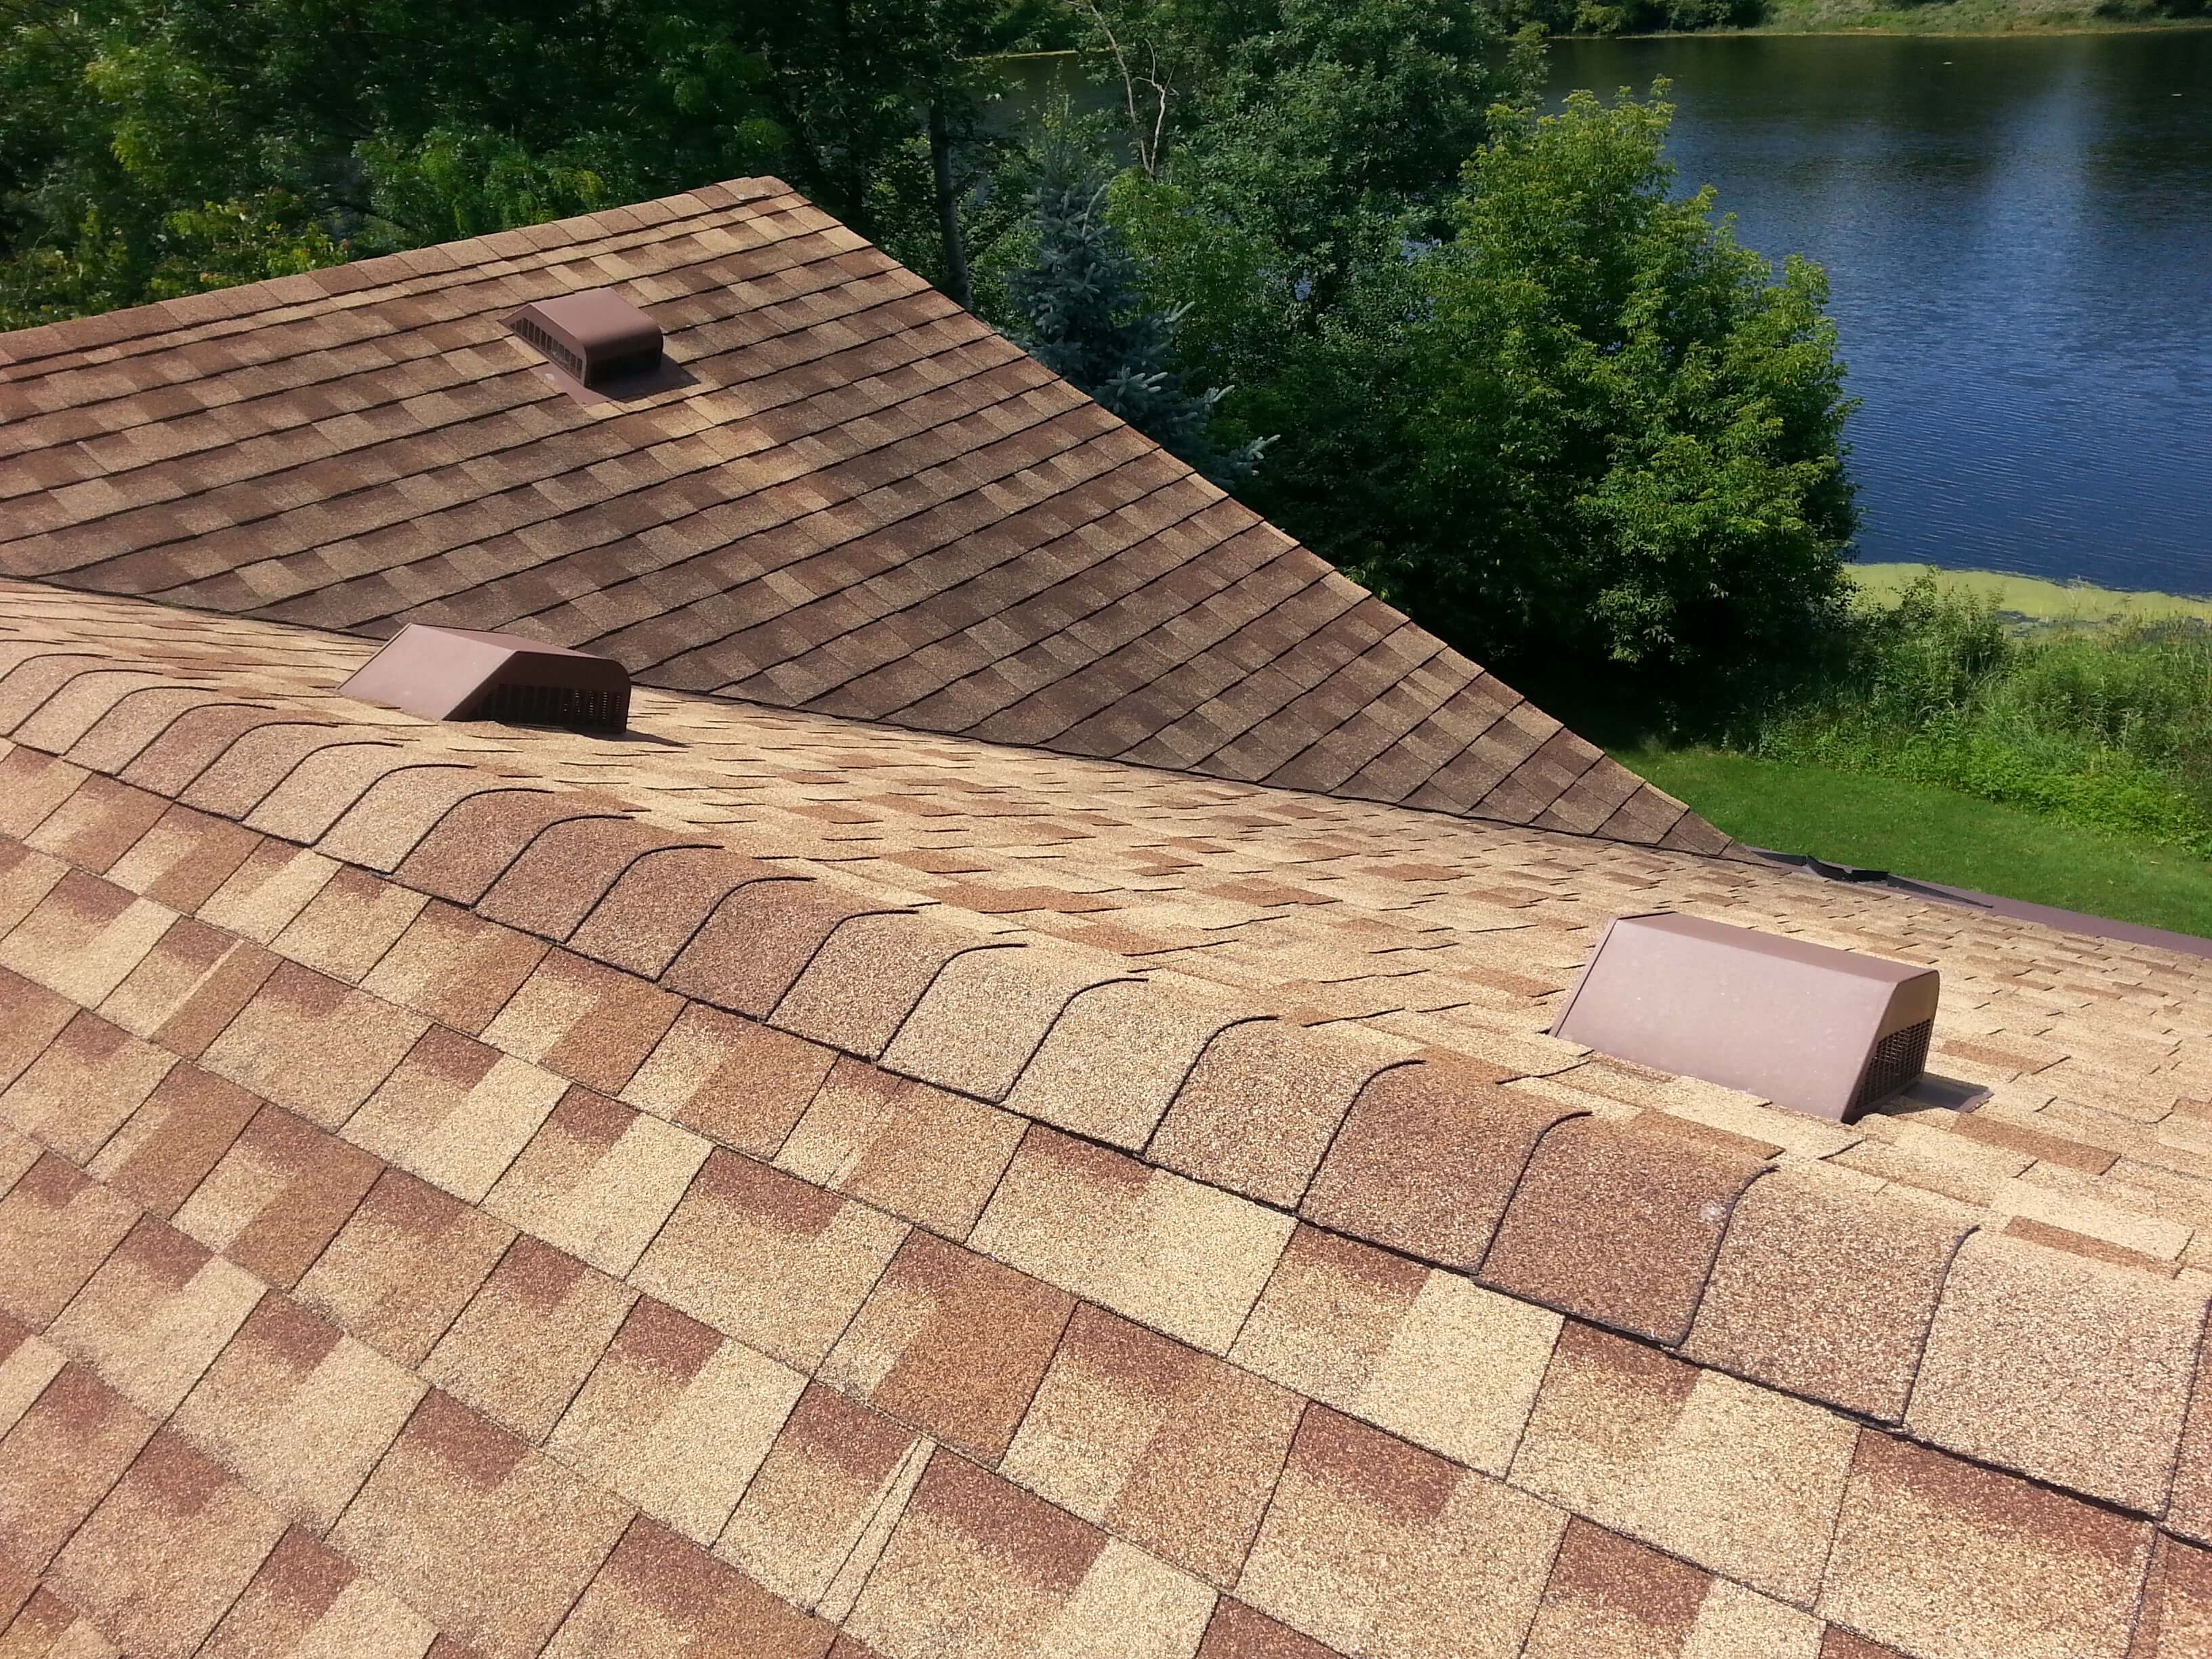 Best Kitchen Gallery: Roof Replacement Part 1 Should Contractors Use Gaf Owens Corning of Architectural Shingles  on rachelxblog.com